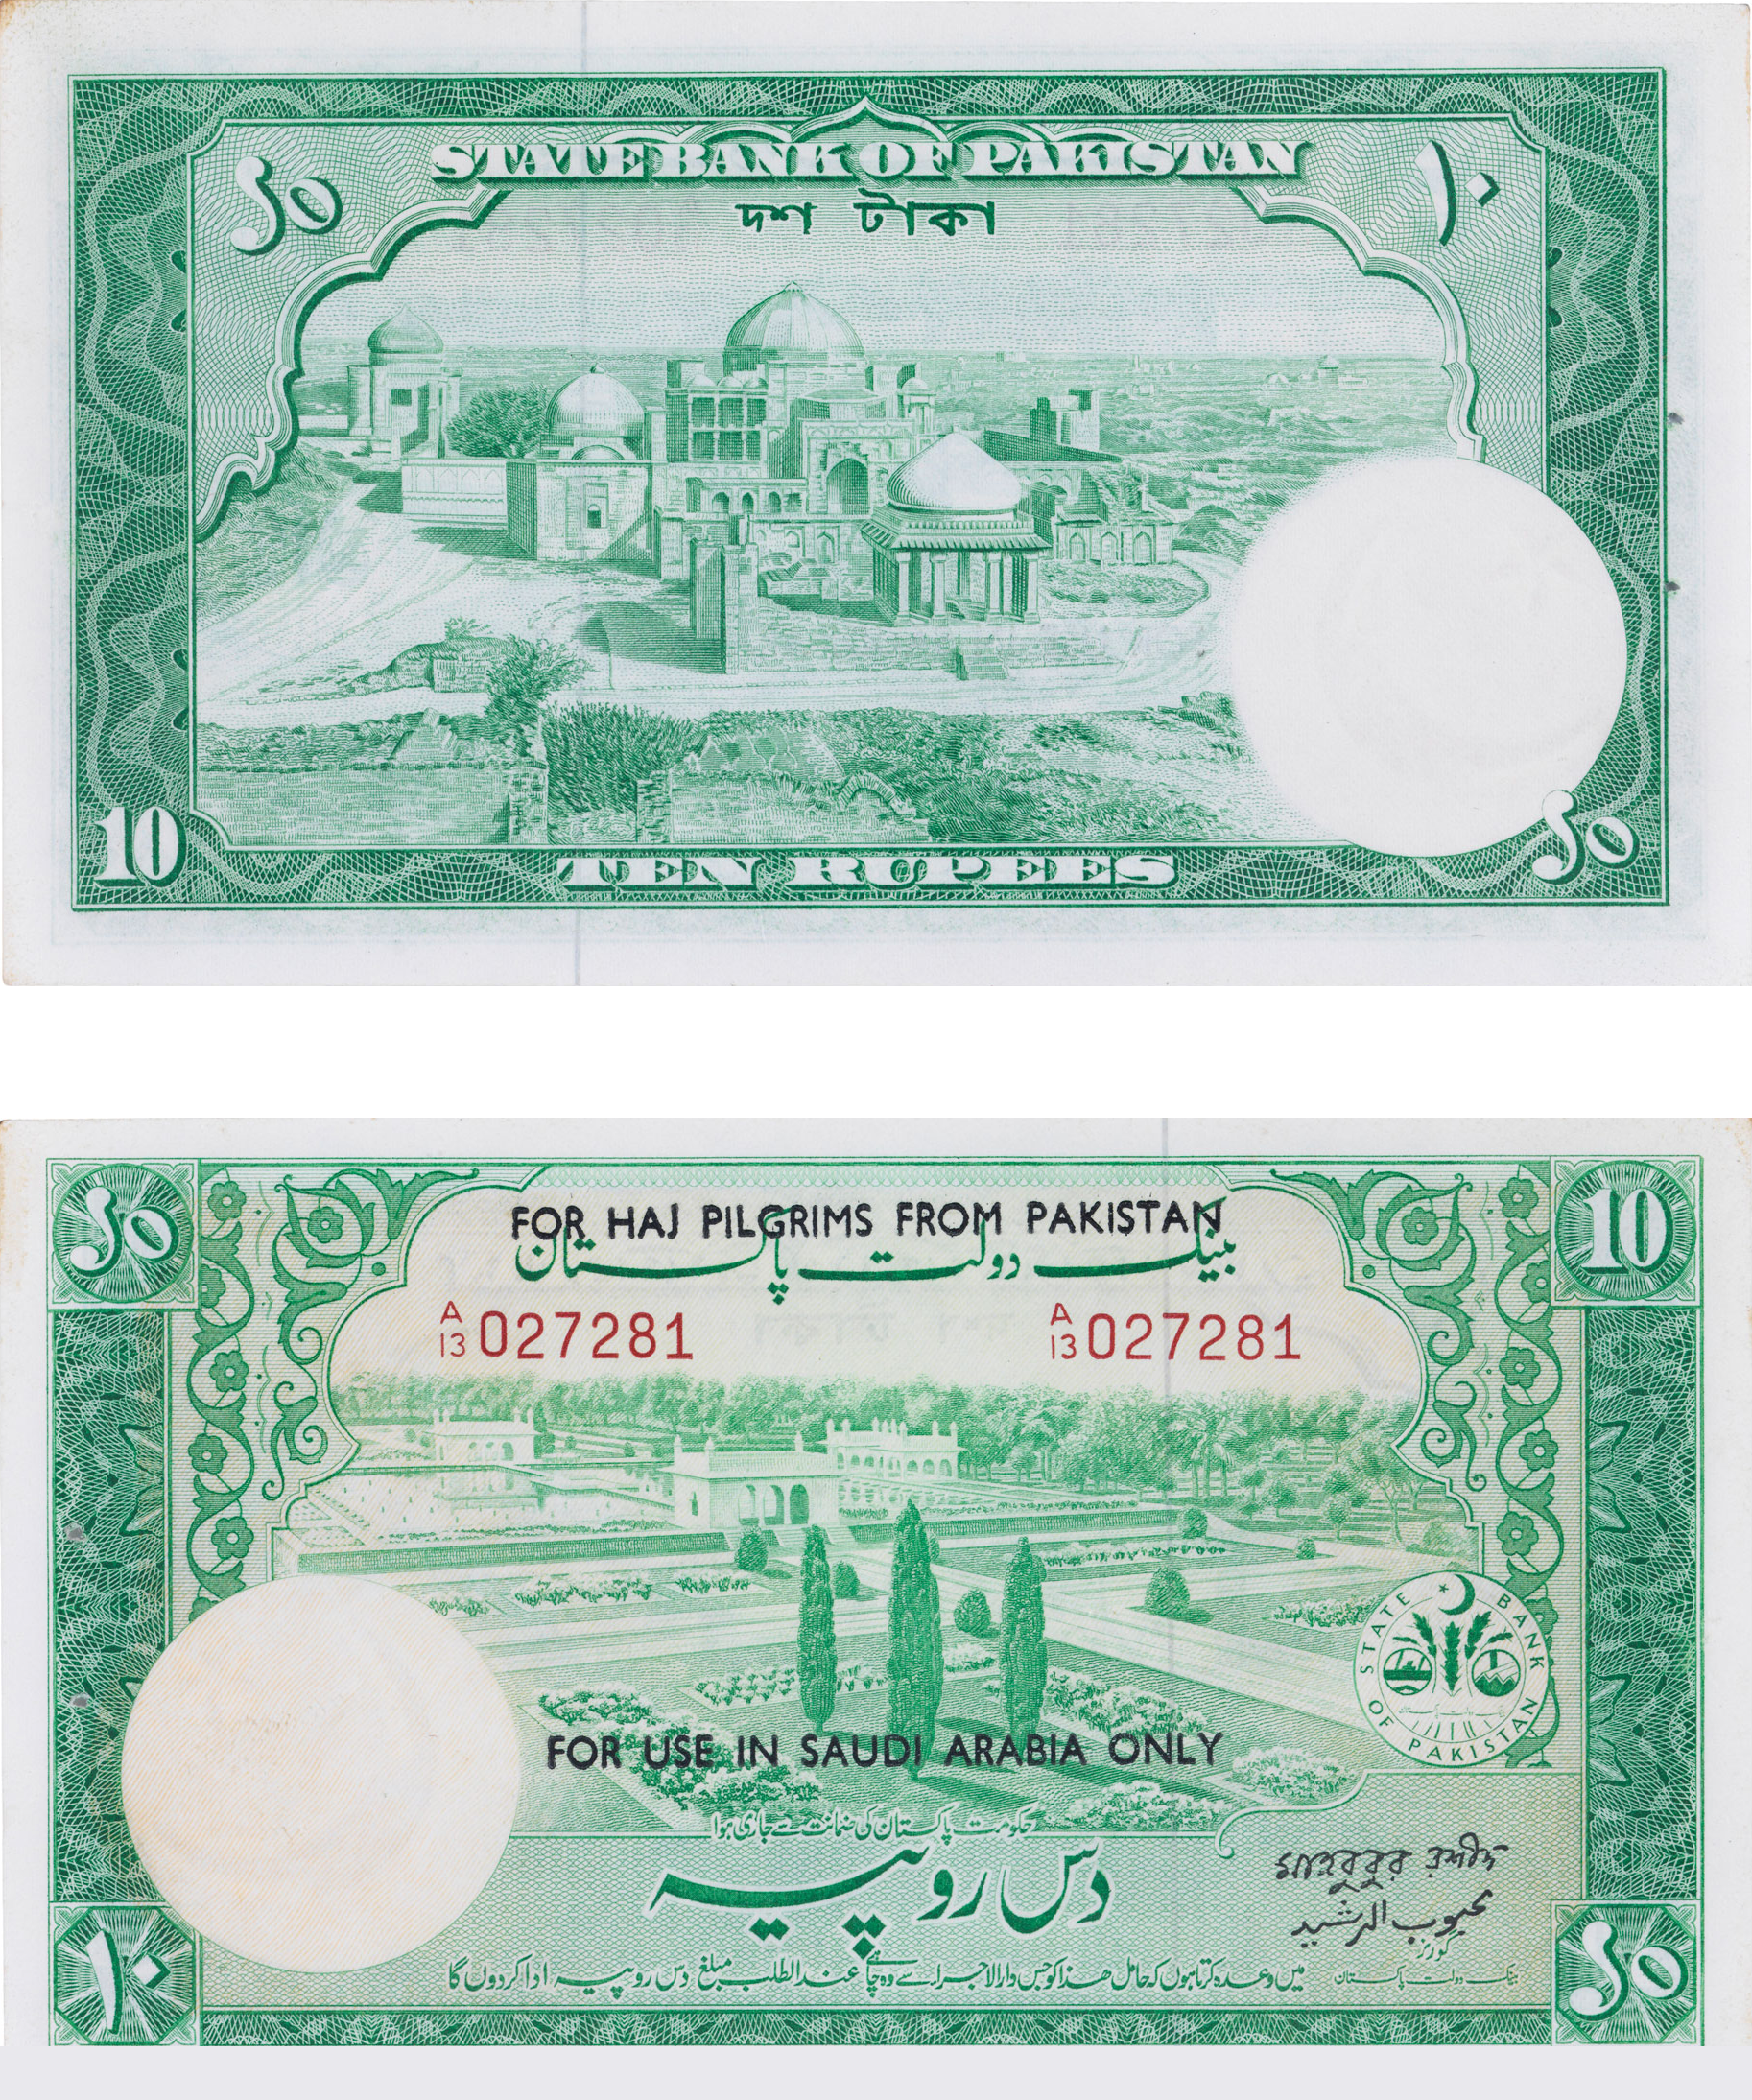 State Bank of Pakistan Hajj pilgrim issue, specimen 10 rupees; serial number A/1 000000